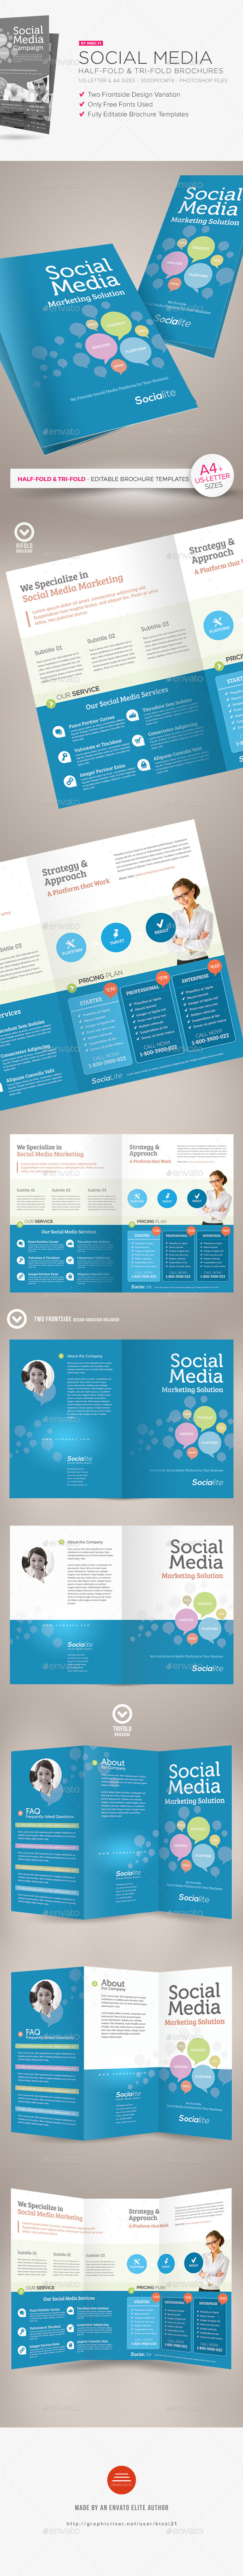 Social Media Half-fold and Tri-fold Brochures - Corporate Brochures